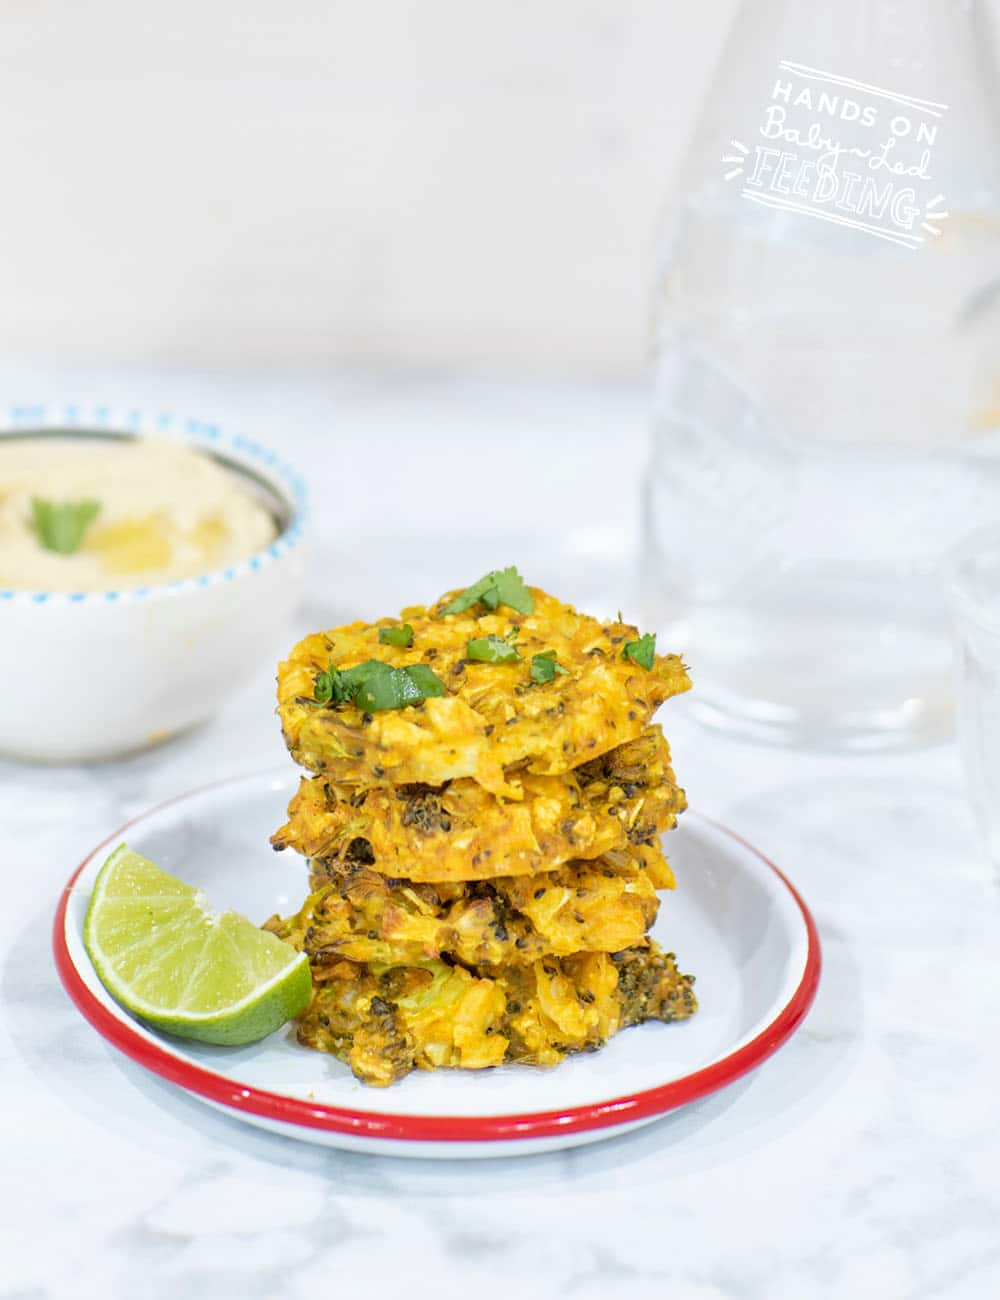 Egg free broccoli and cauliflower fritters for baby-led weaning. Easy and healthy vegan finger food for babies and toddlers. This healthy lunch or dinner recipe is baked in the oven not fried! #babyledweaning #fritters #eggfree #vegan #eggfree #healthylunch